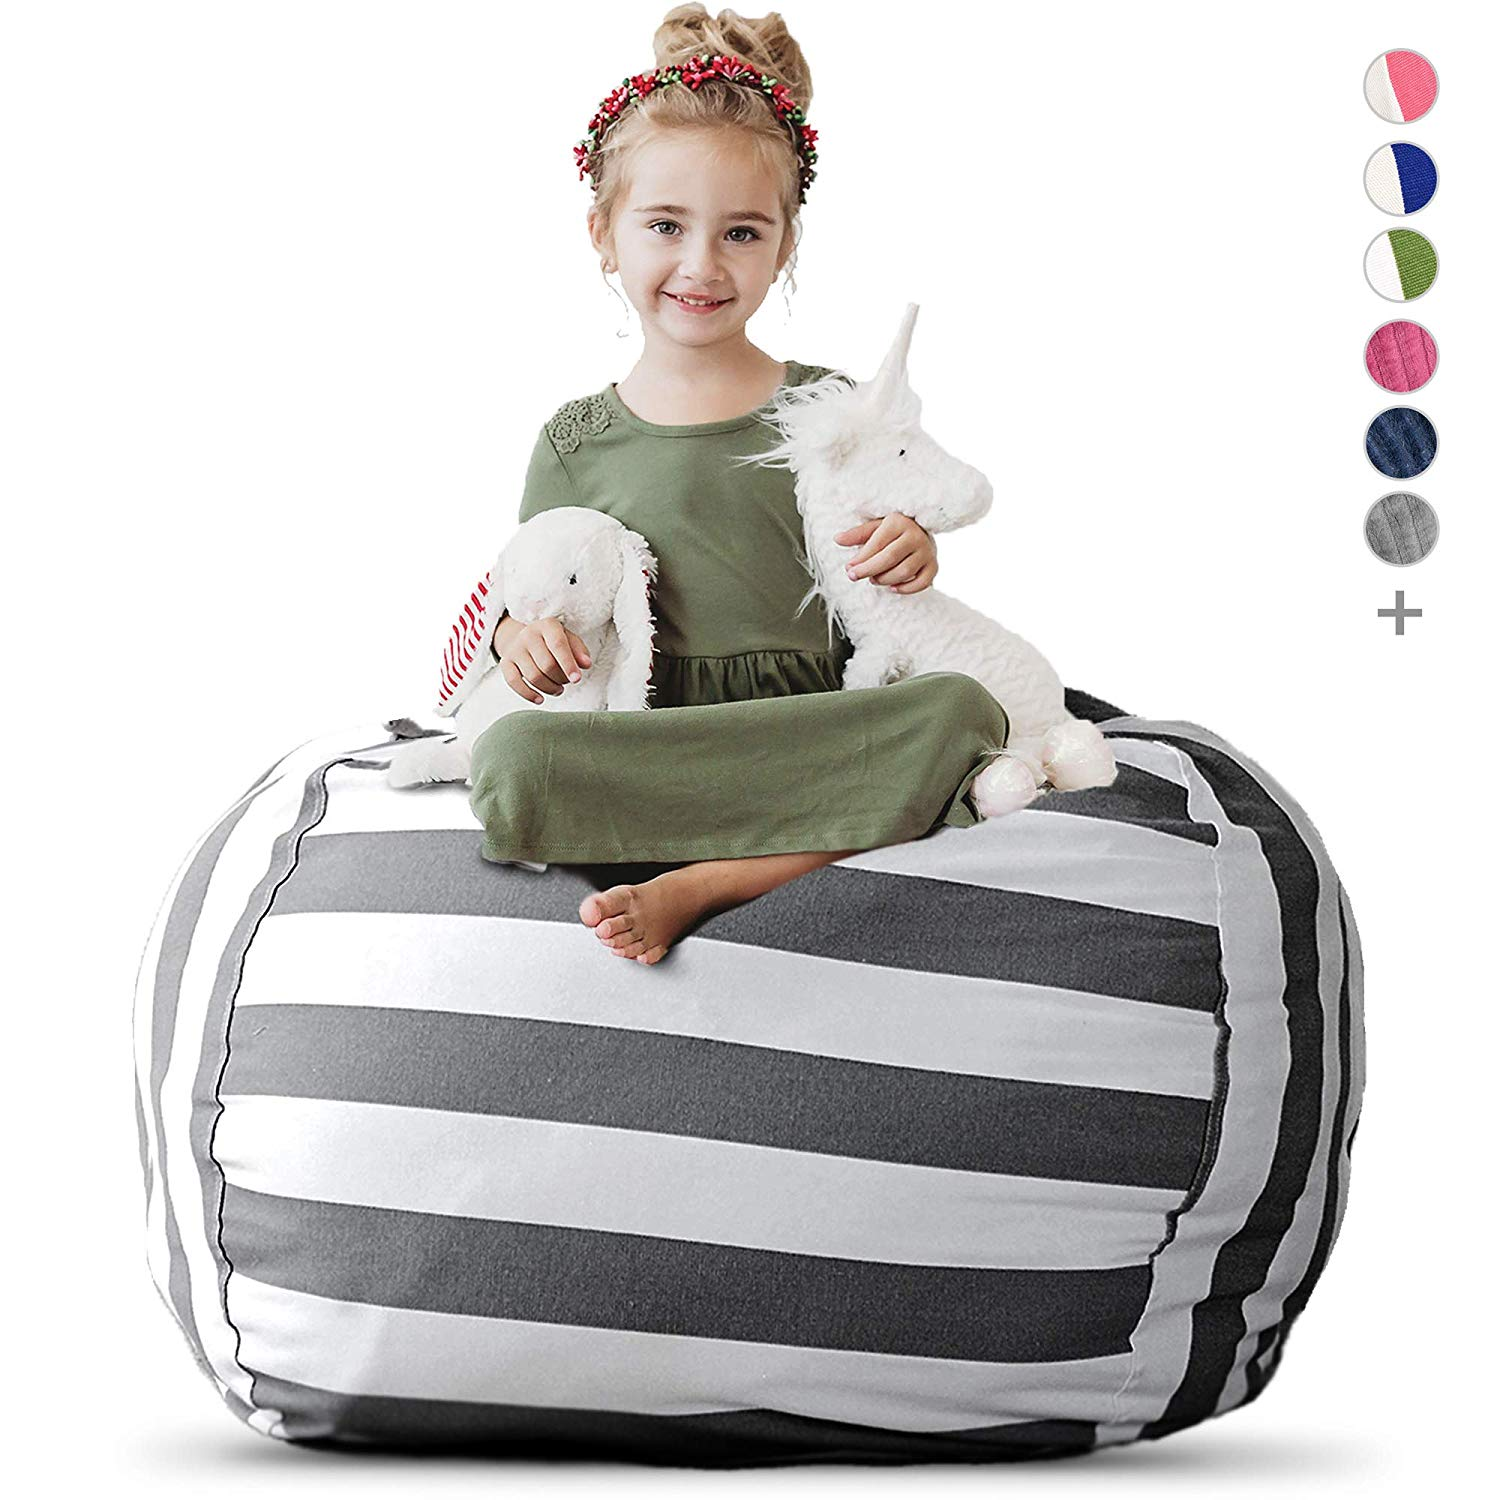 Creatively Stuffed Animal Bean Bag Chair